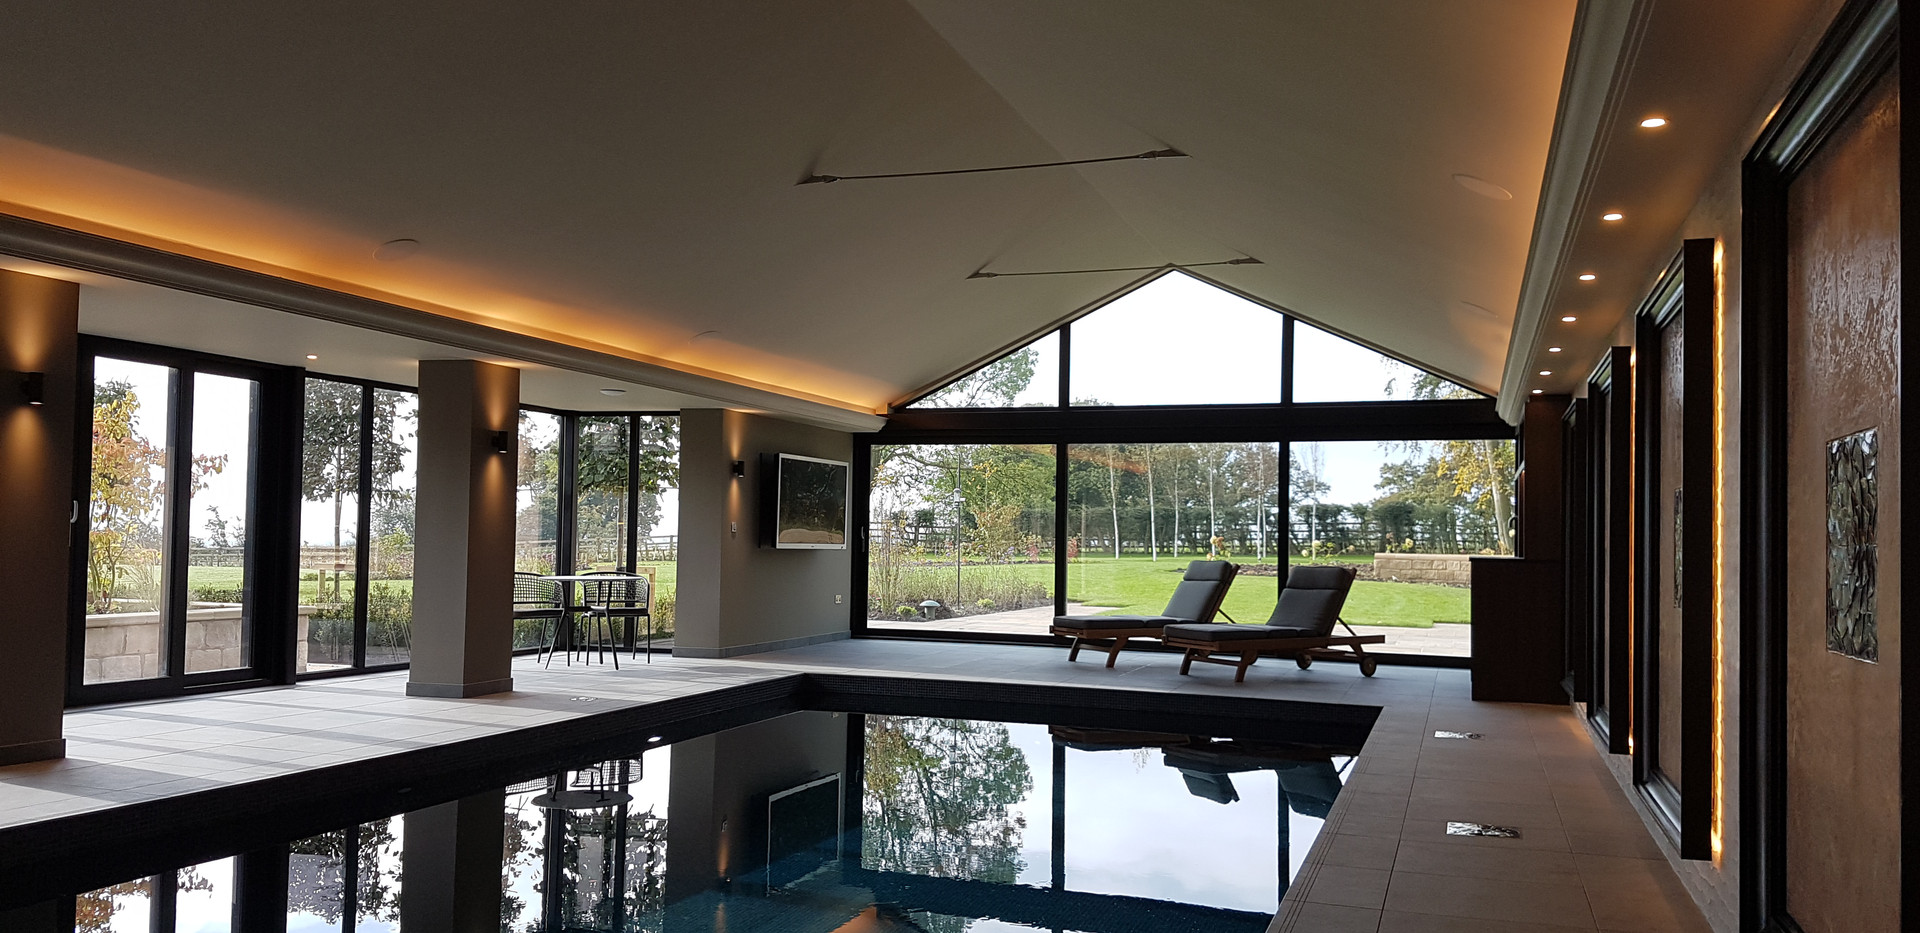 Pool with Smart Lighting, TV and surround sound system